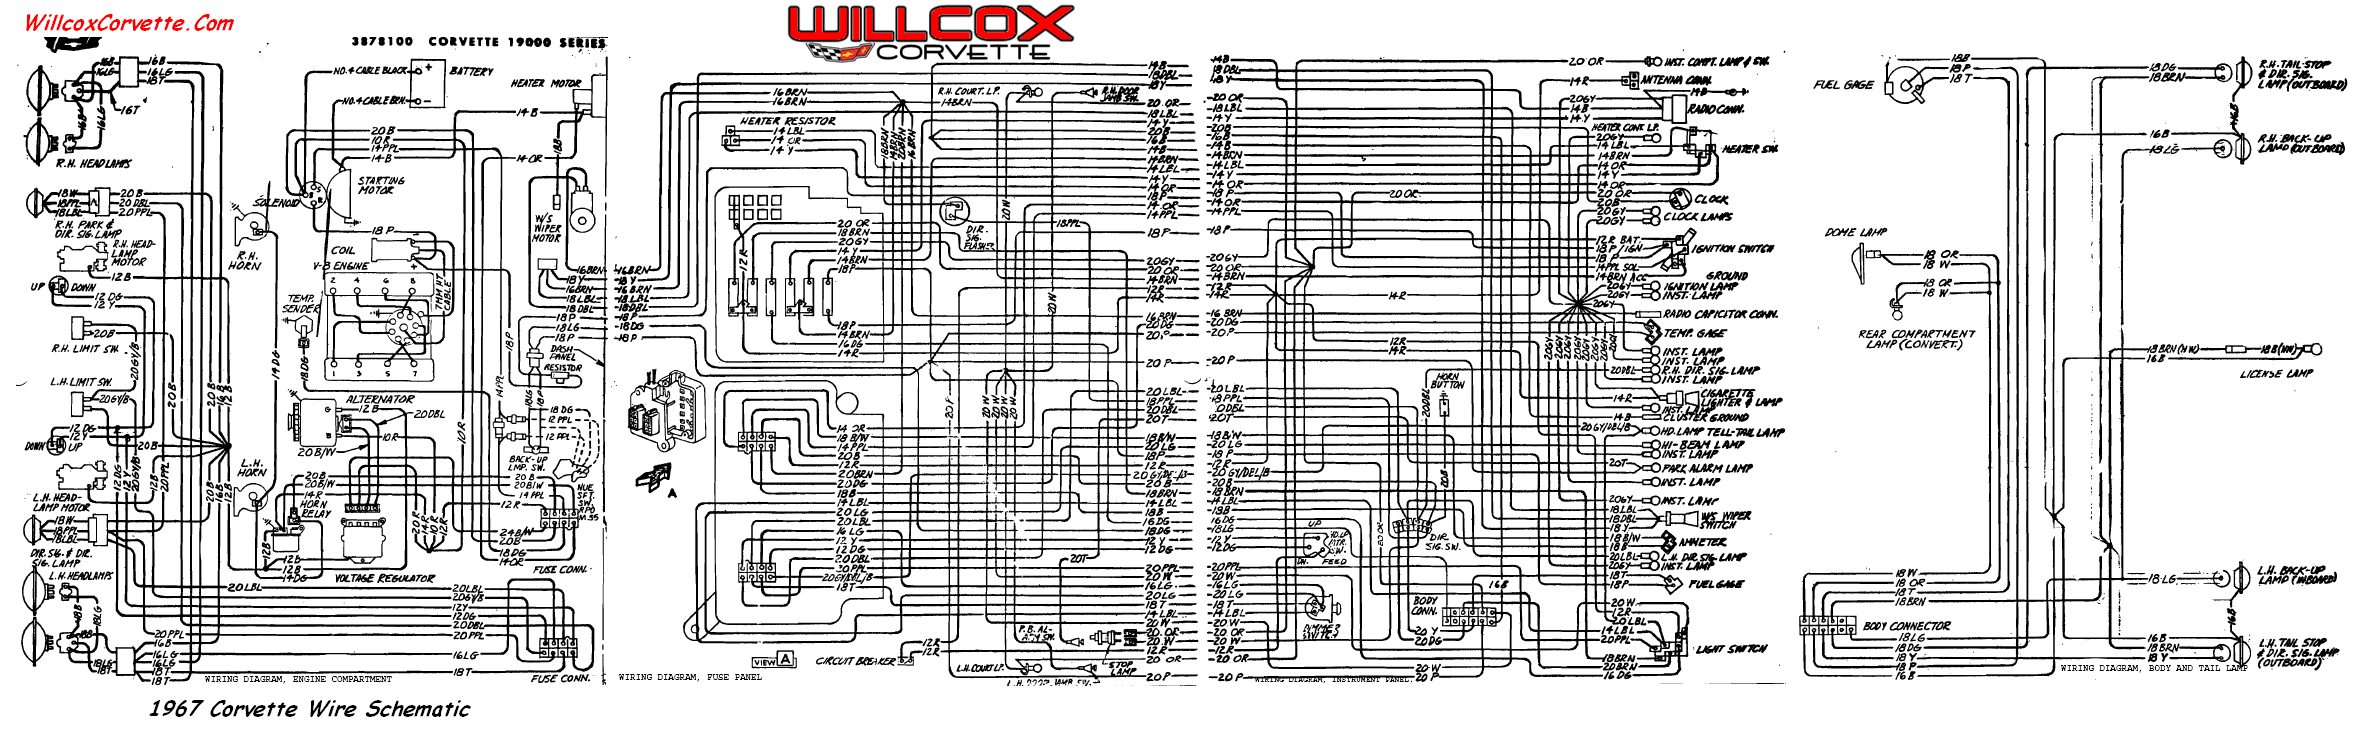 67 wire schematic for tracing wires 1967 corvette wiring diagram (tracer schematic) willcox corvette 75 corvette wiring diagram at fashall.co